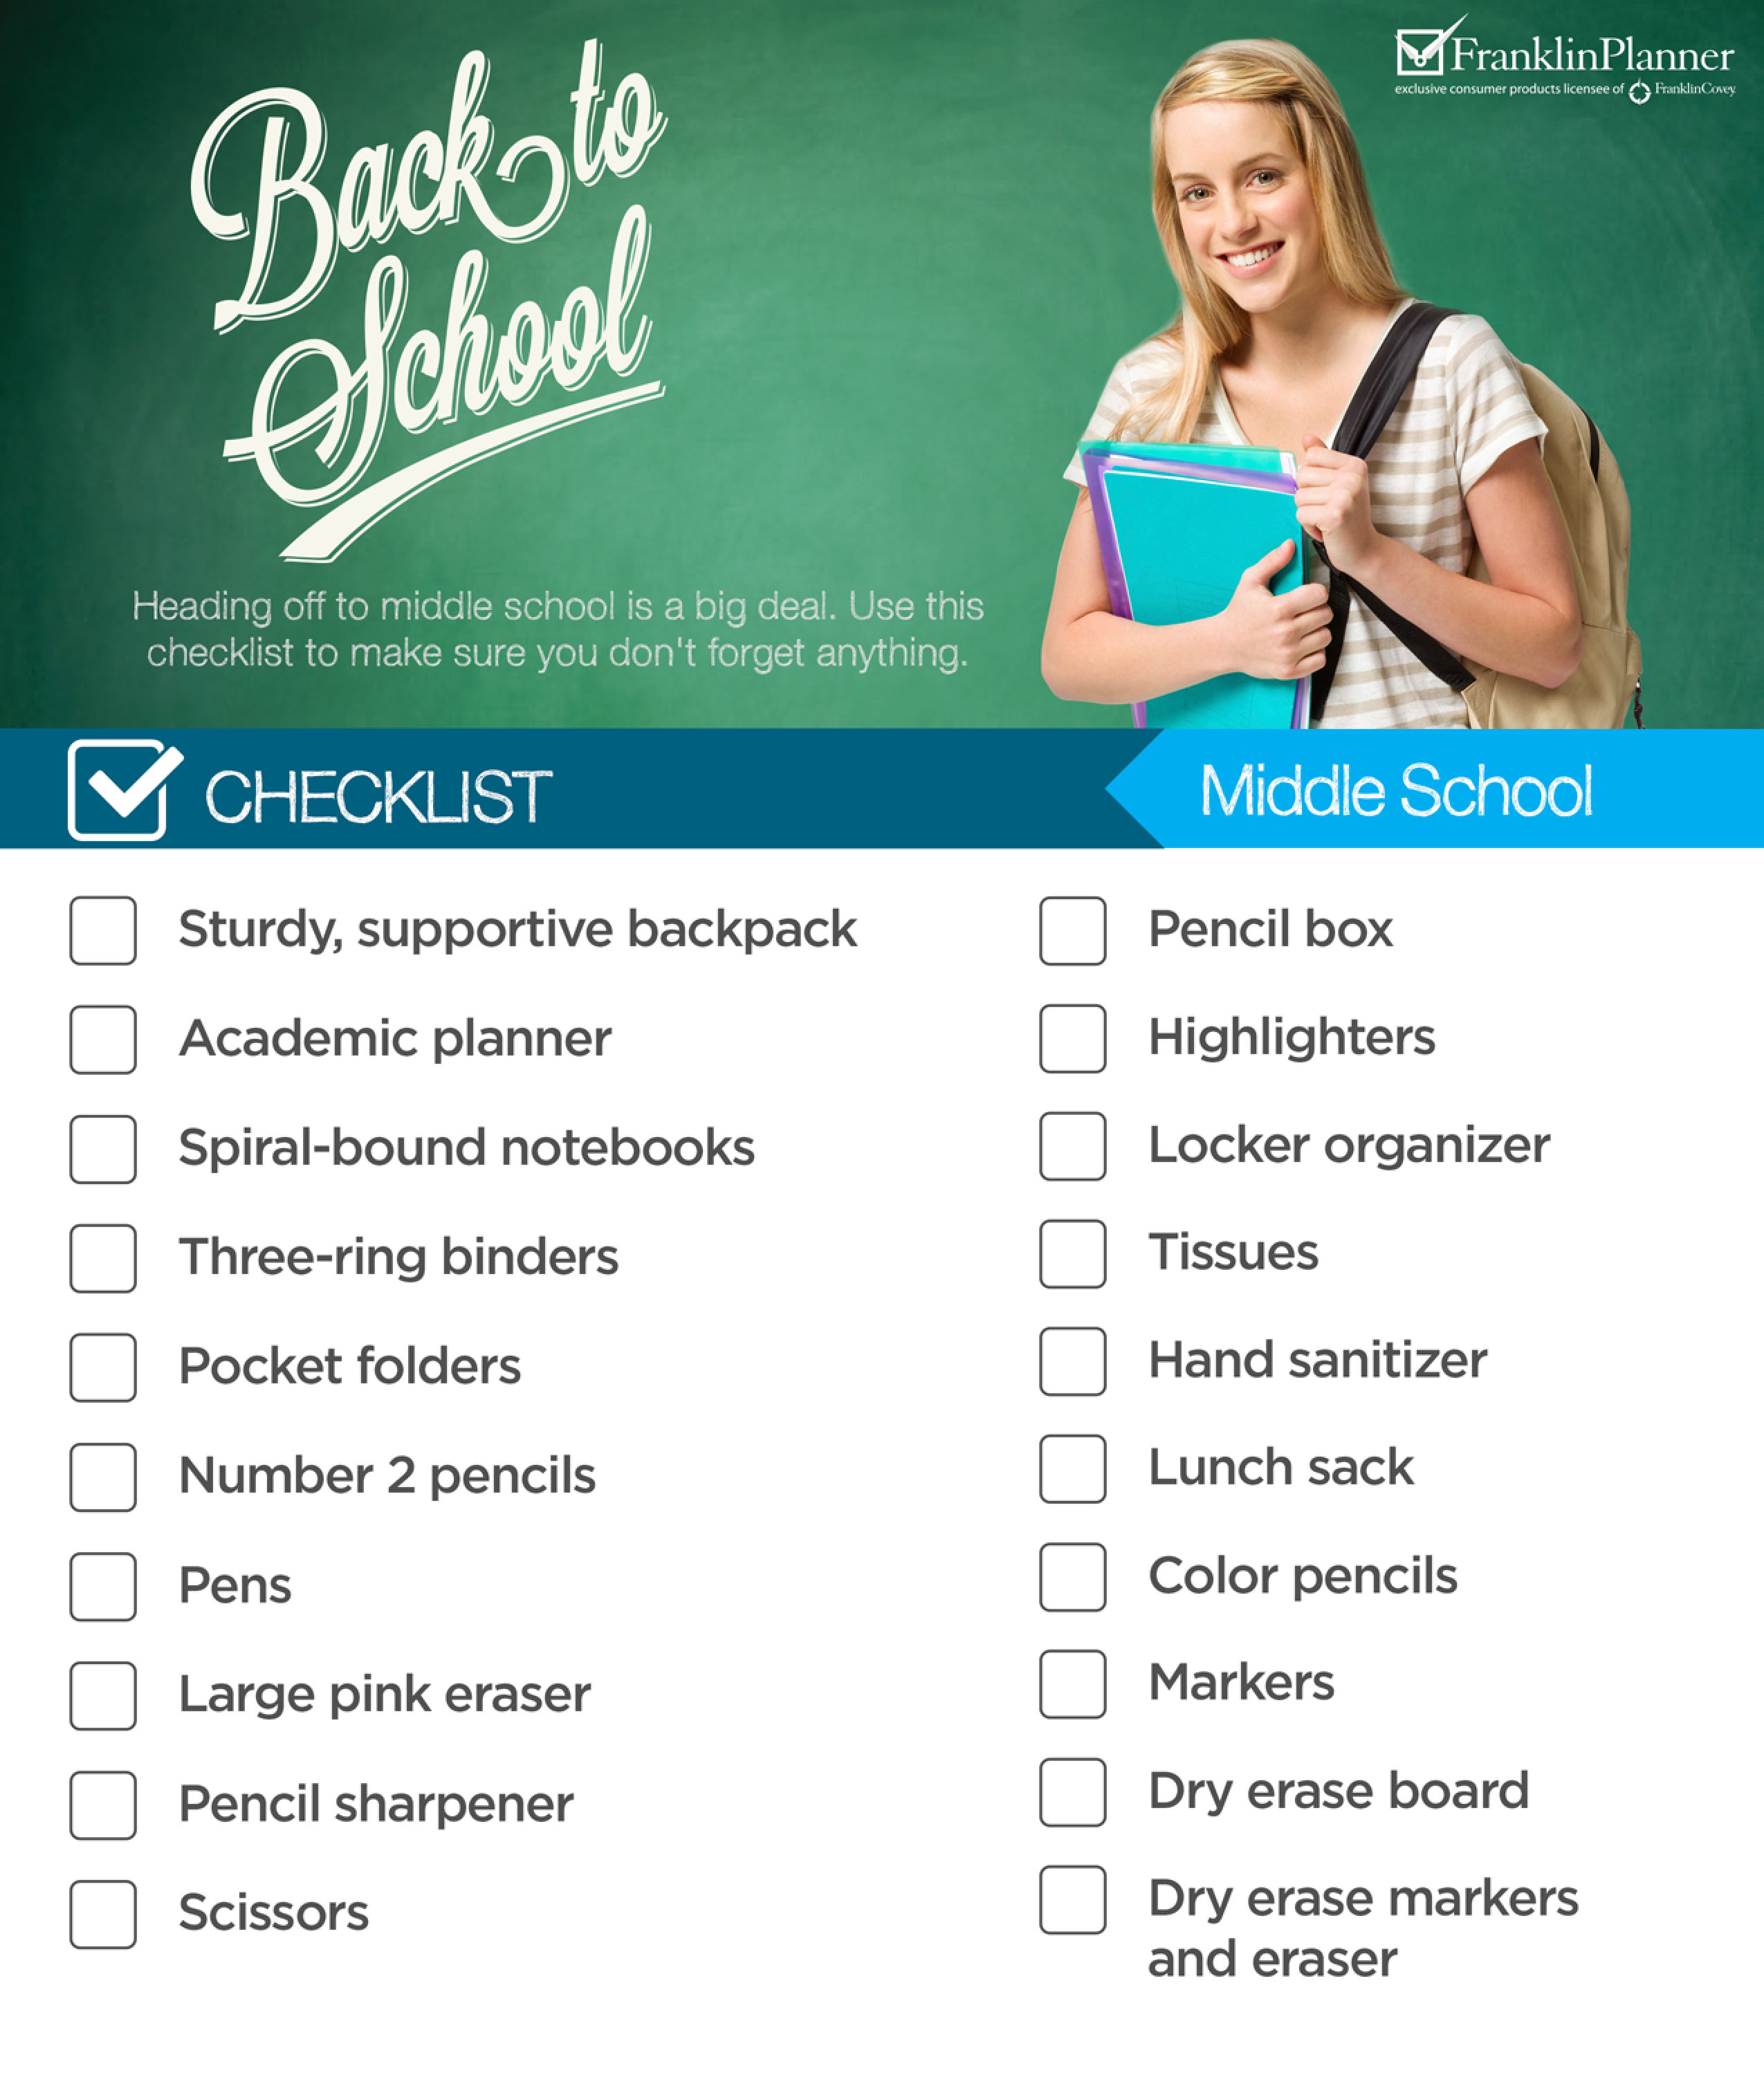 1402041 Back to School Catalog Checklist FINAL (Middle School)